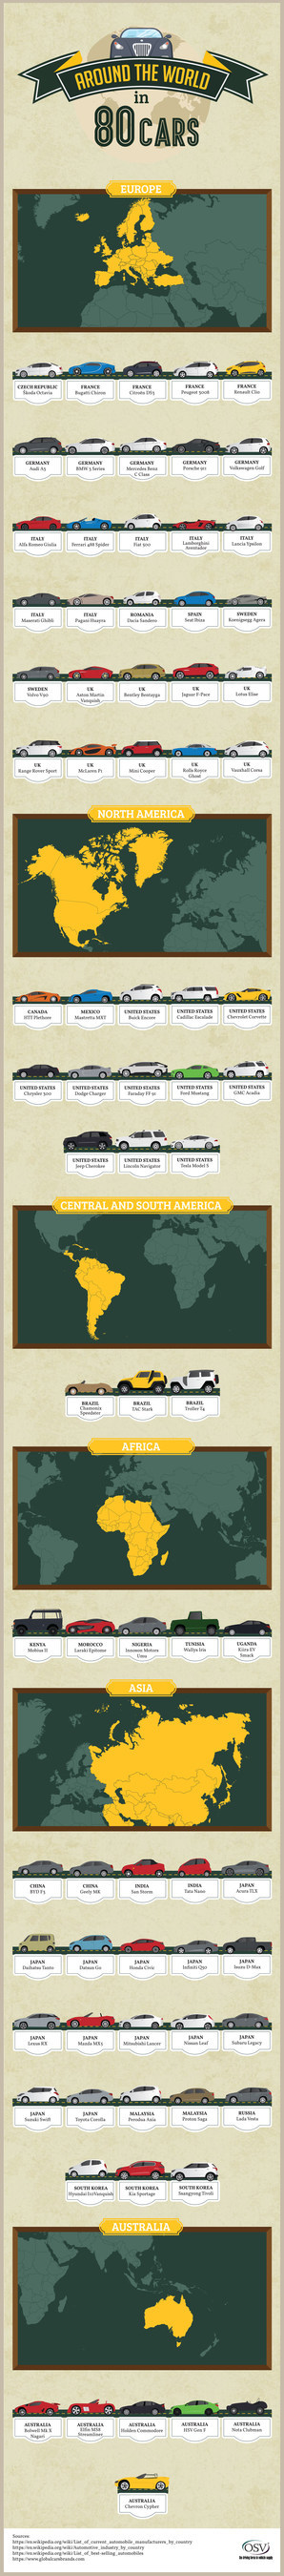 OSV infographic showcases 80 popular cars from around the world. (PRNewsFoto/OSV)